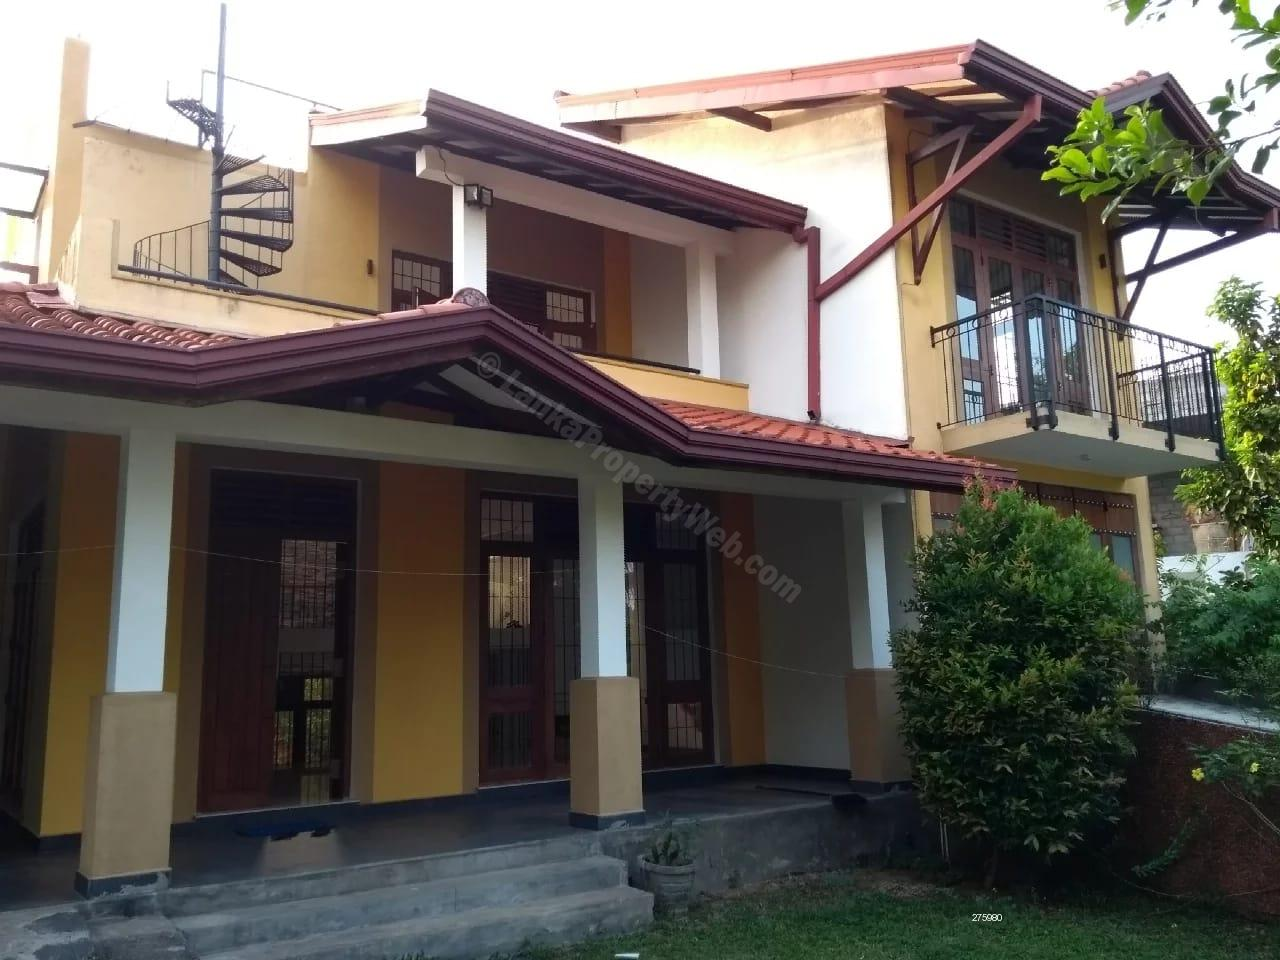 4 B/R Luxury House for rent in Pita Kotte